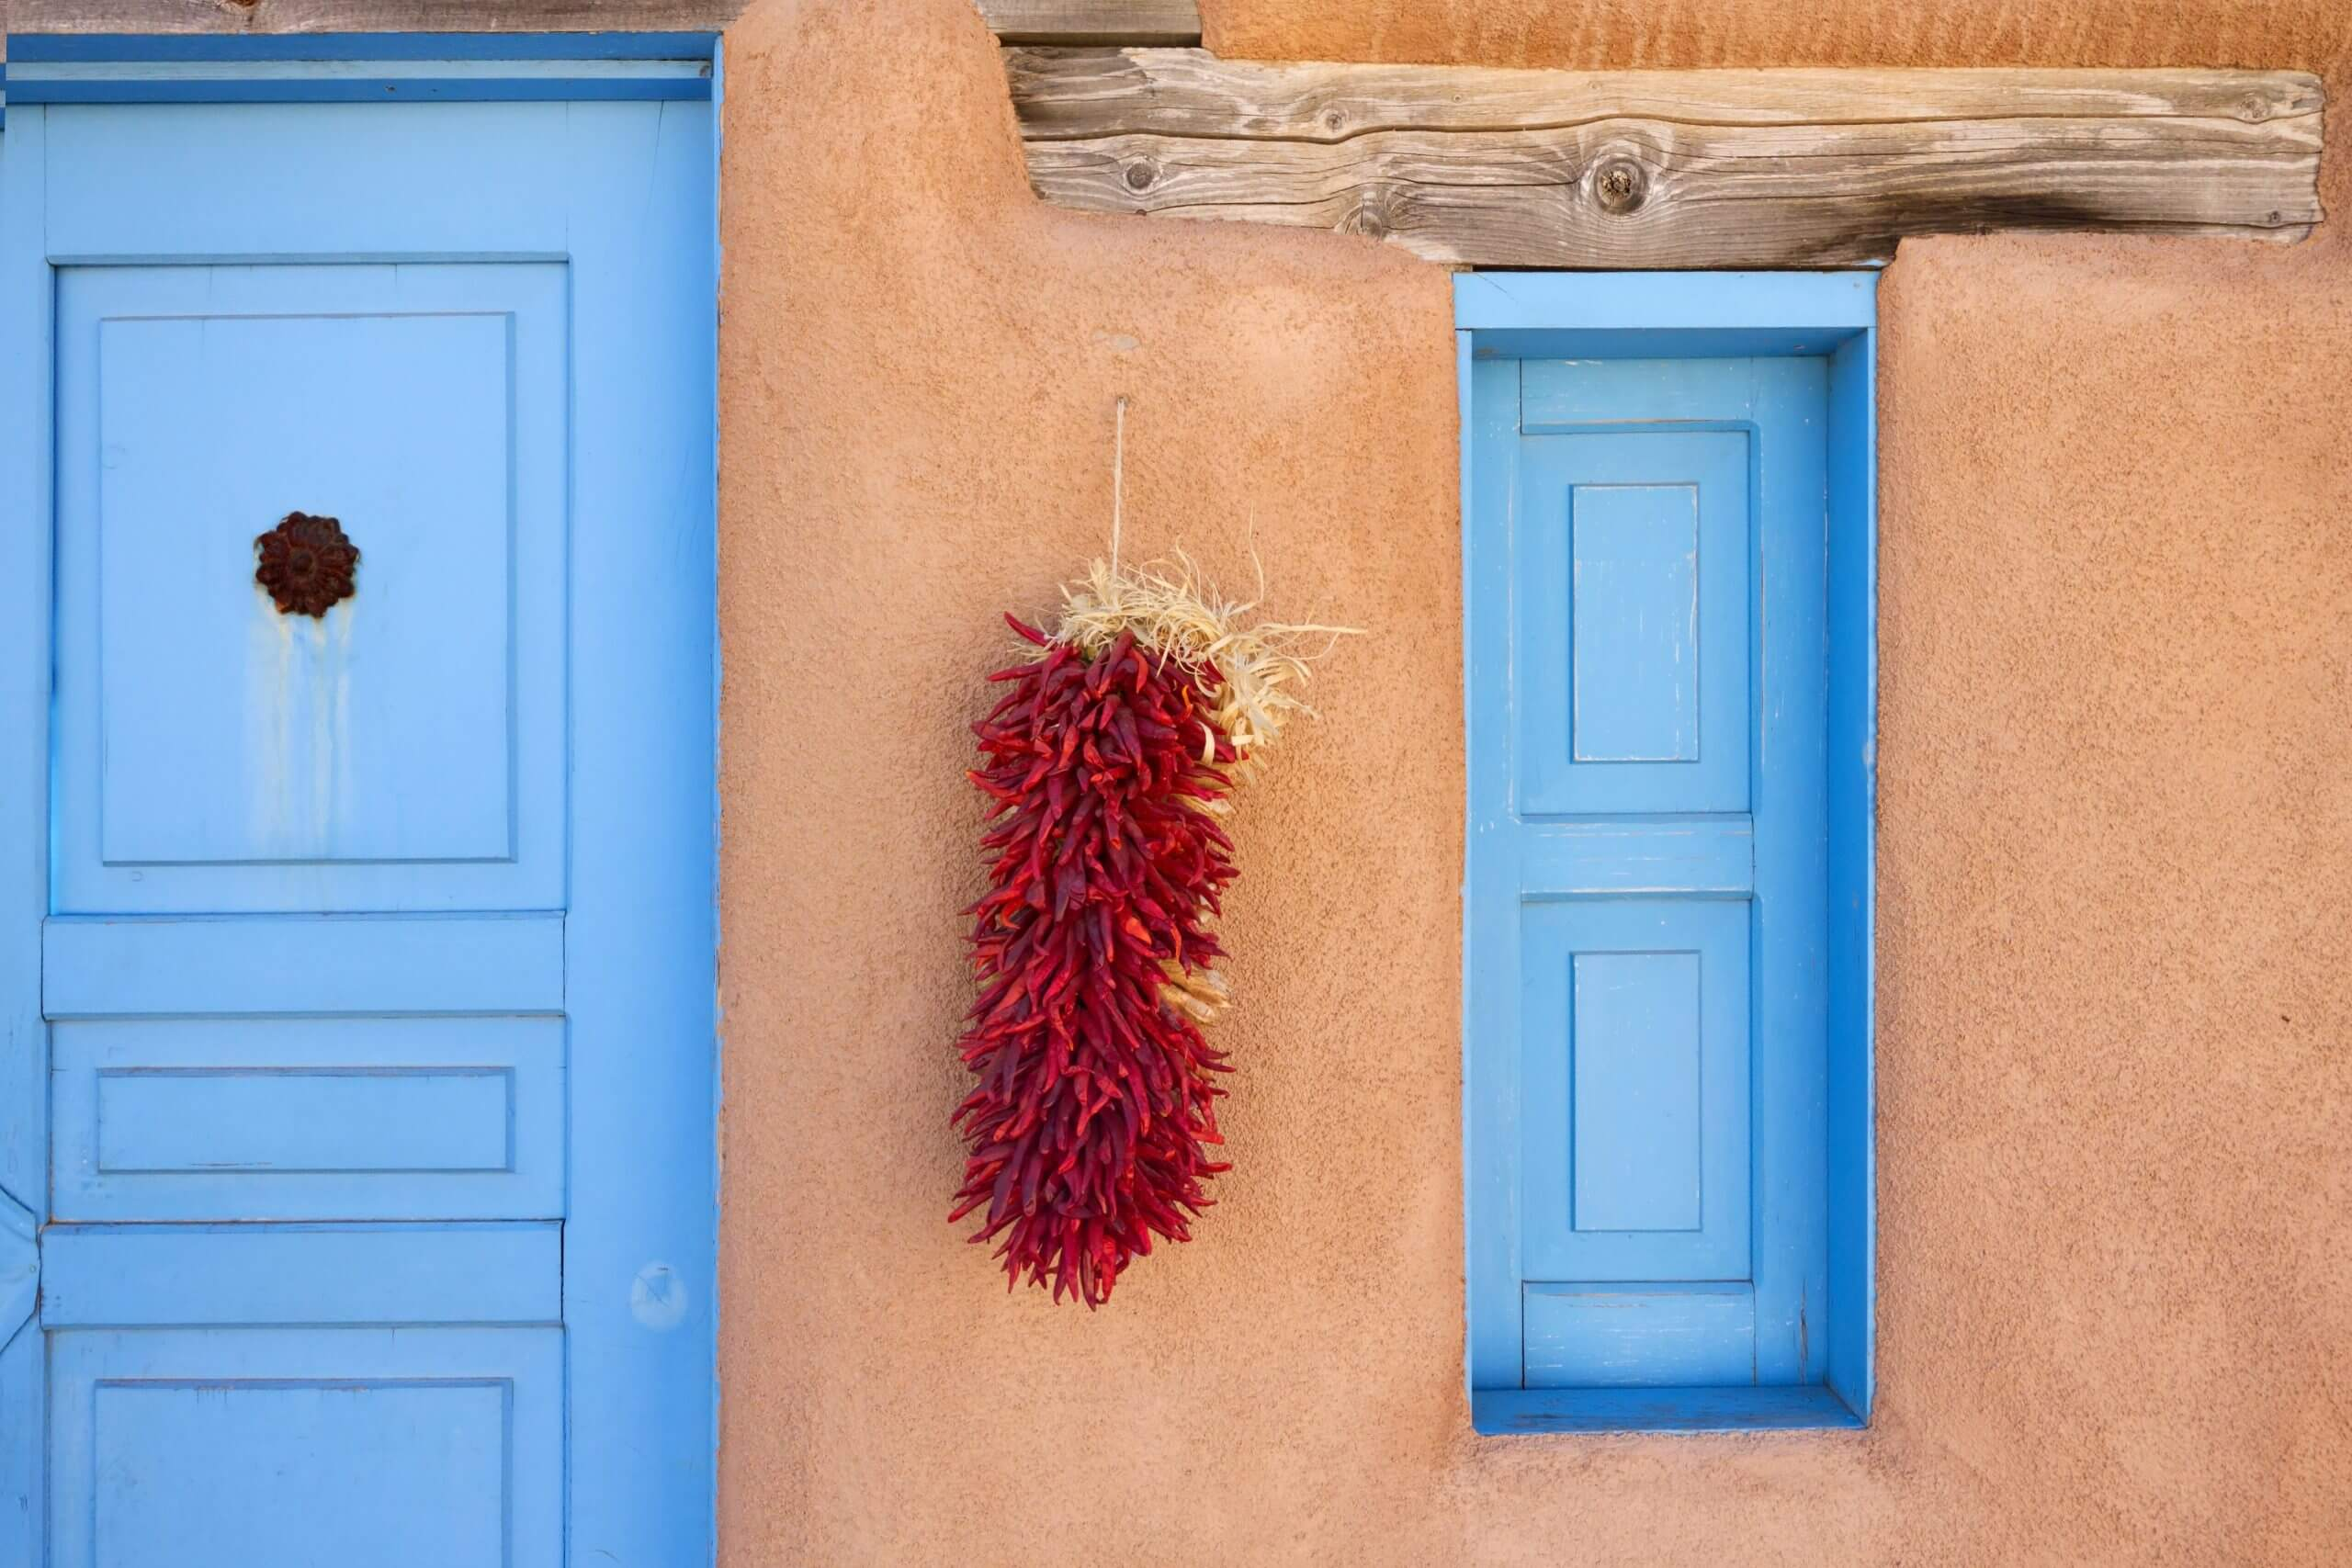 An adobe constructed household adorned with a batch of hanging dried, red chile peppers.